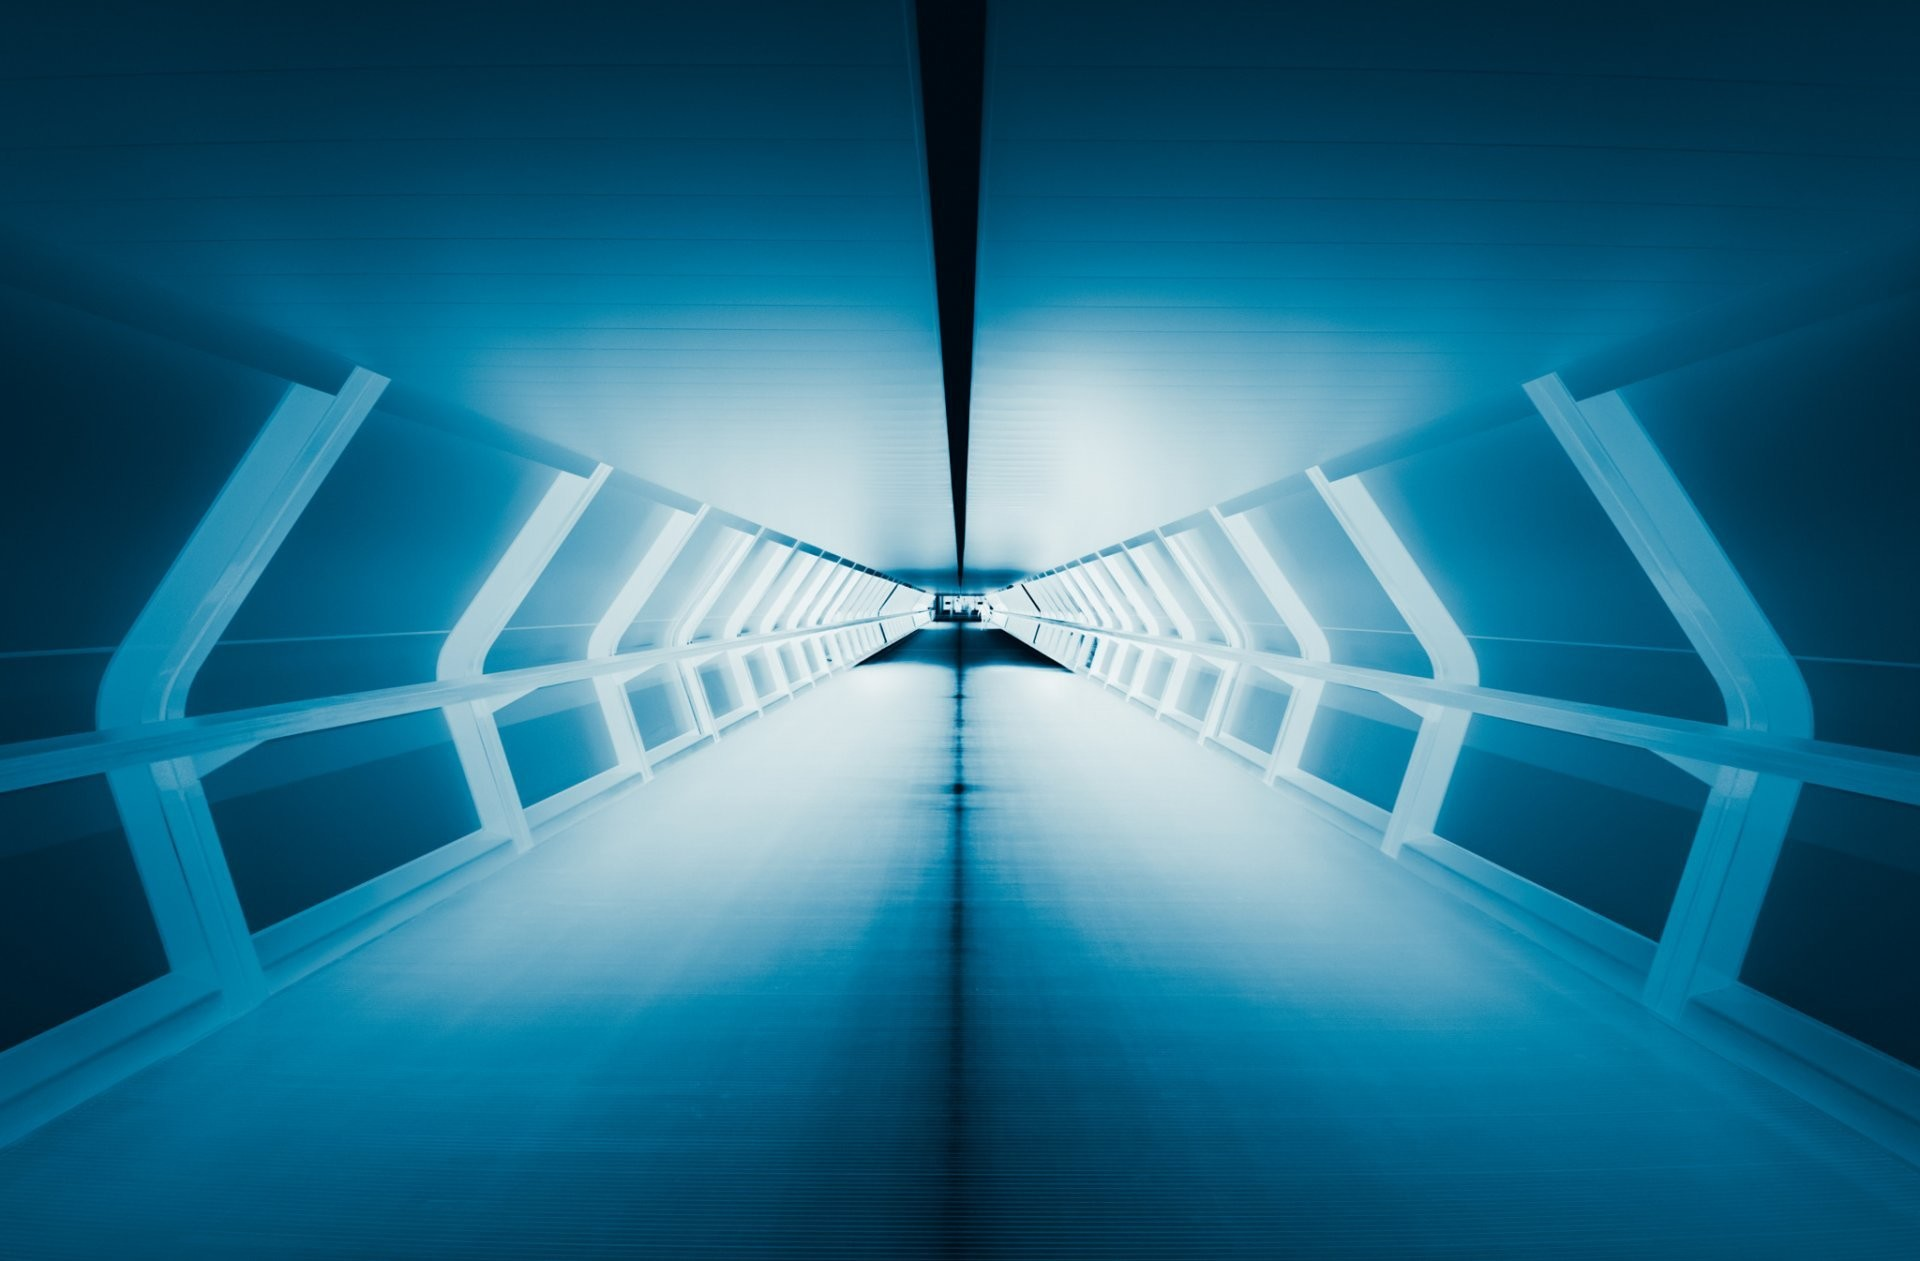 1920x1261 light tunnel blue perspective